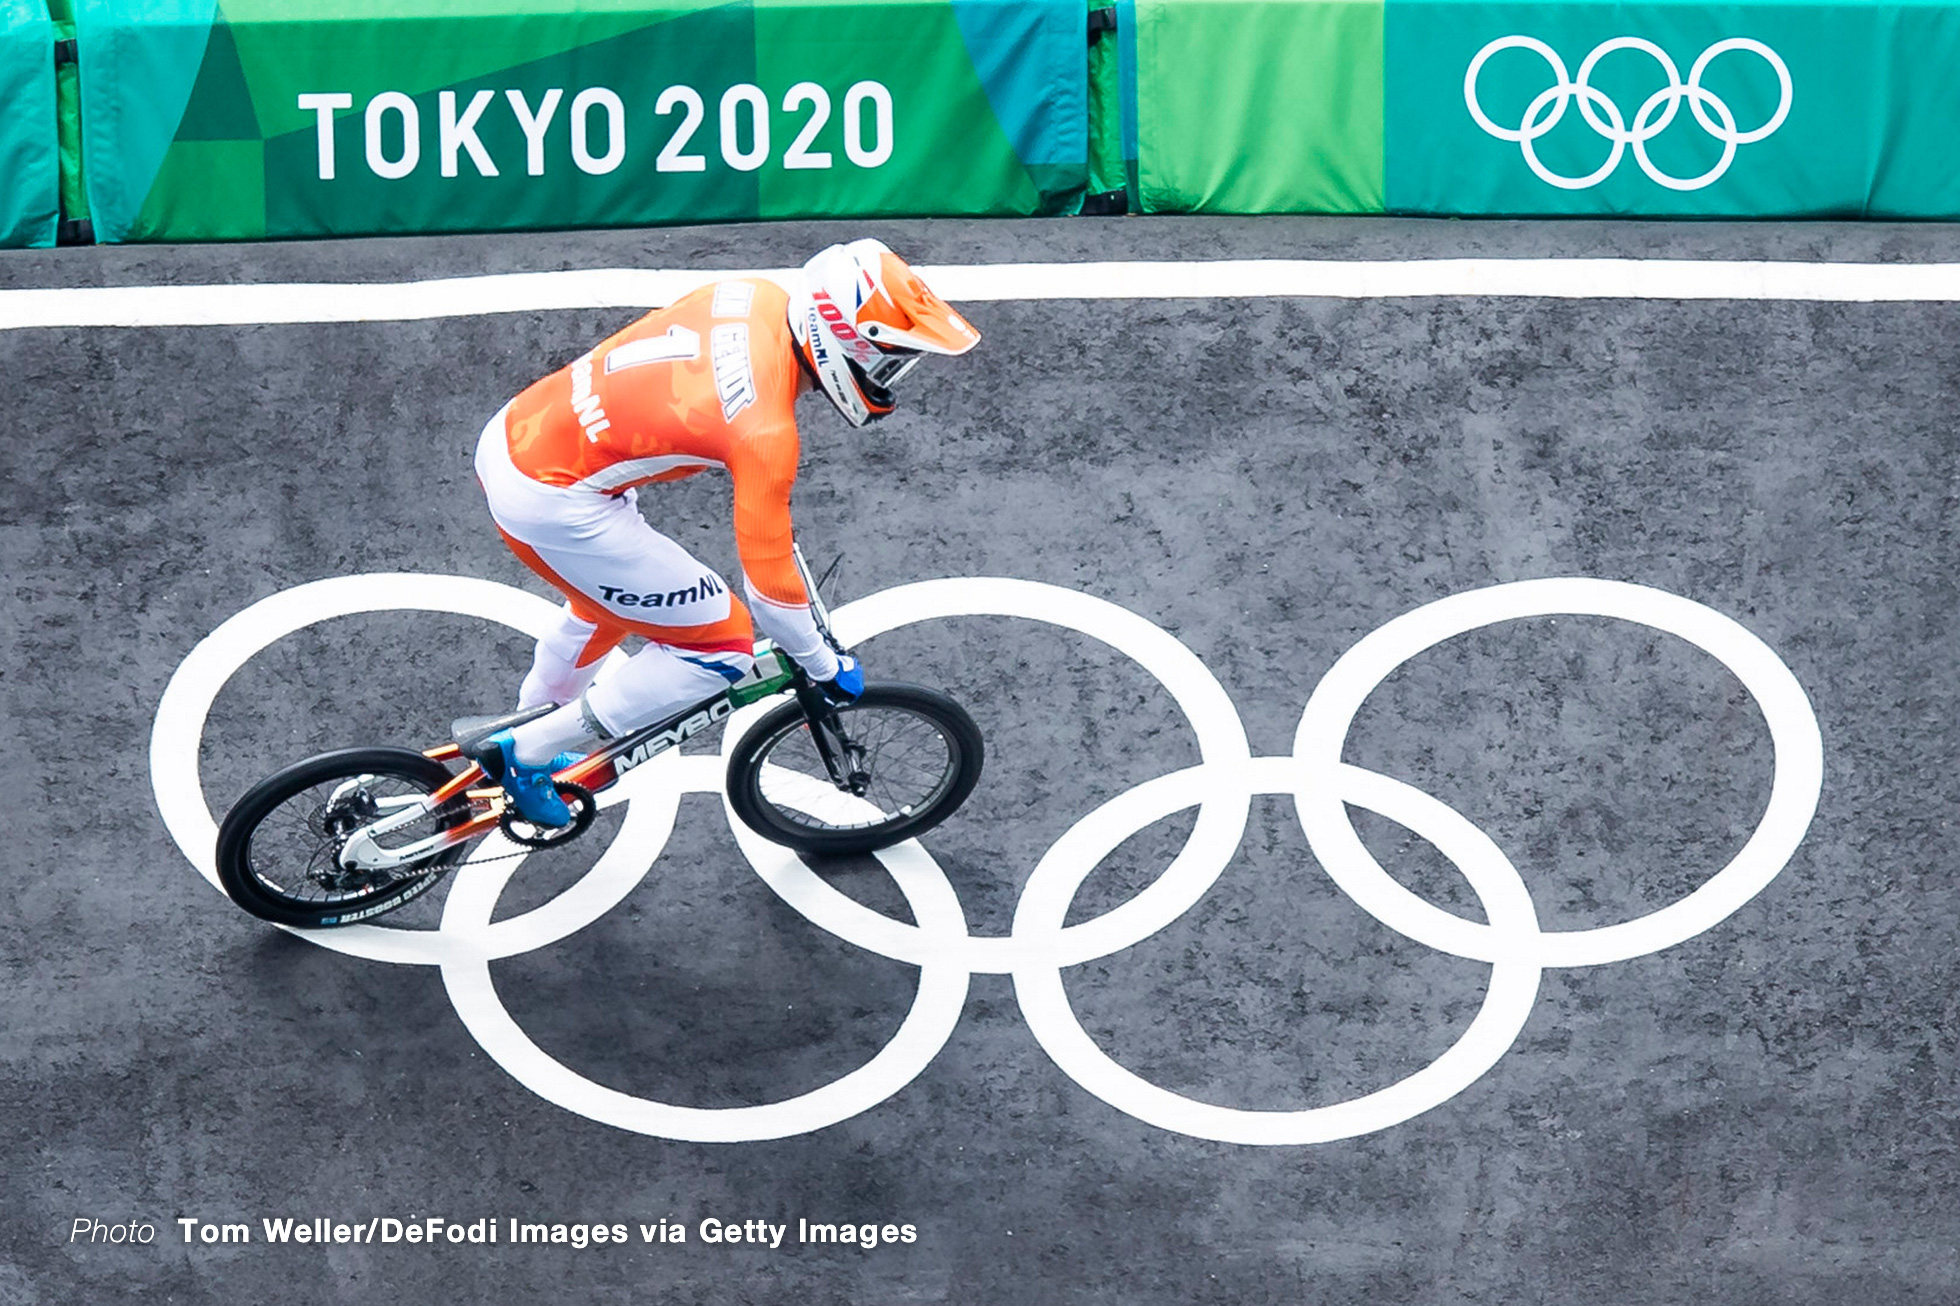 TOKYO, JAPAN - JULY 30: (BILD ZEITUNG OUT) Twan Van Gendt of Netherlands compete during the Men's BMX Racing Run on day seven of the Tokyo 2020 Olympic Games at Ariake Urban Sports Park on July 30, 2021 in Tokyo, Japan. (Photo by Tom Weller/DeFodi Images via Getty Images)